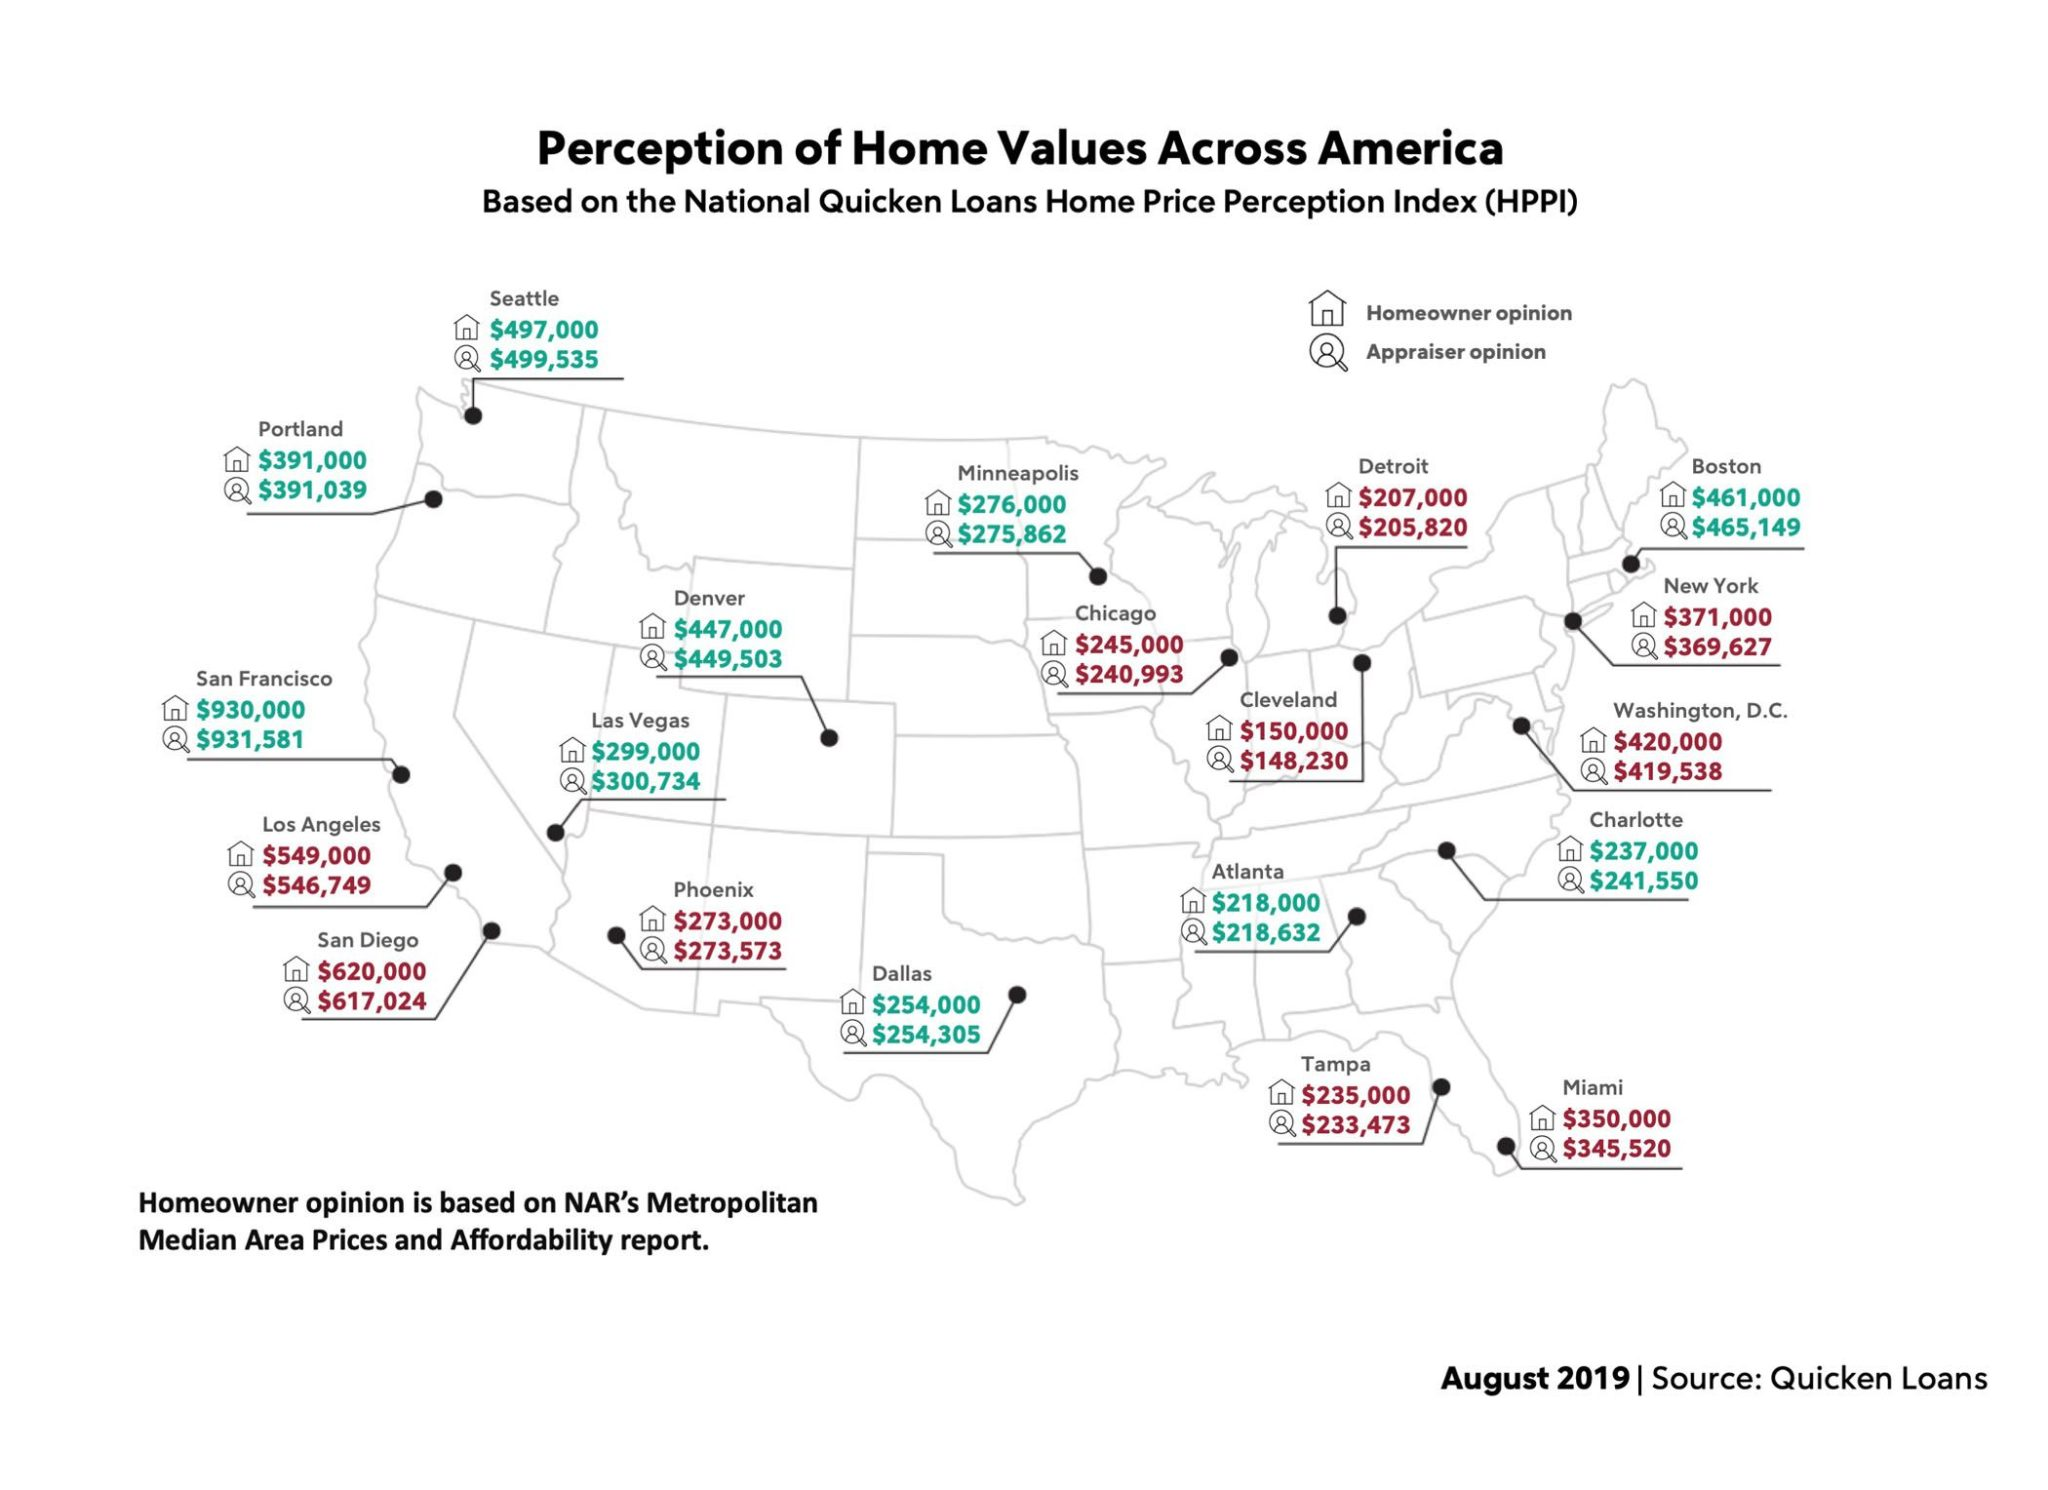 Perception of Home Values Across America (HPPI), August 2019.